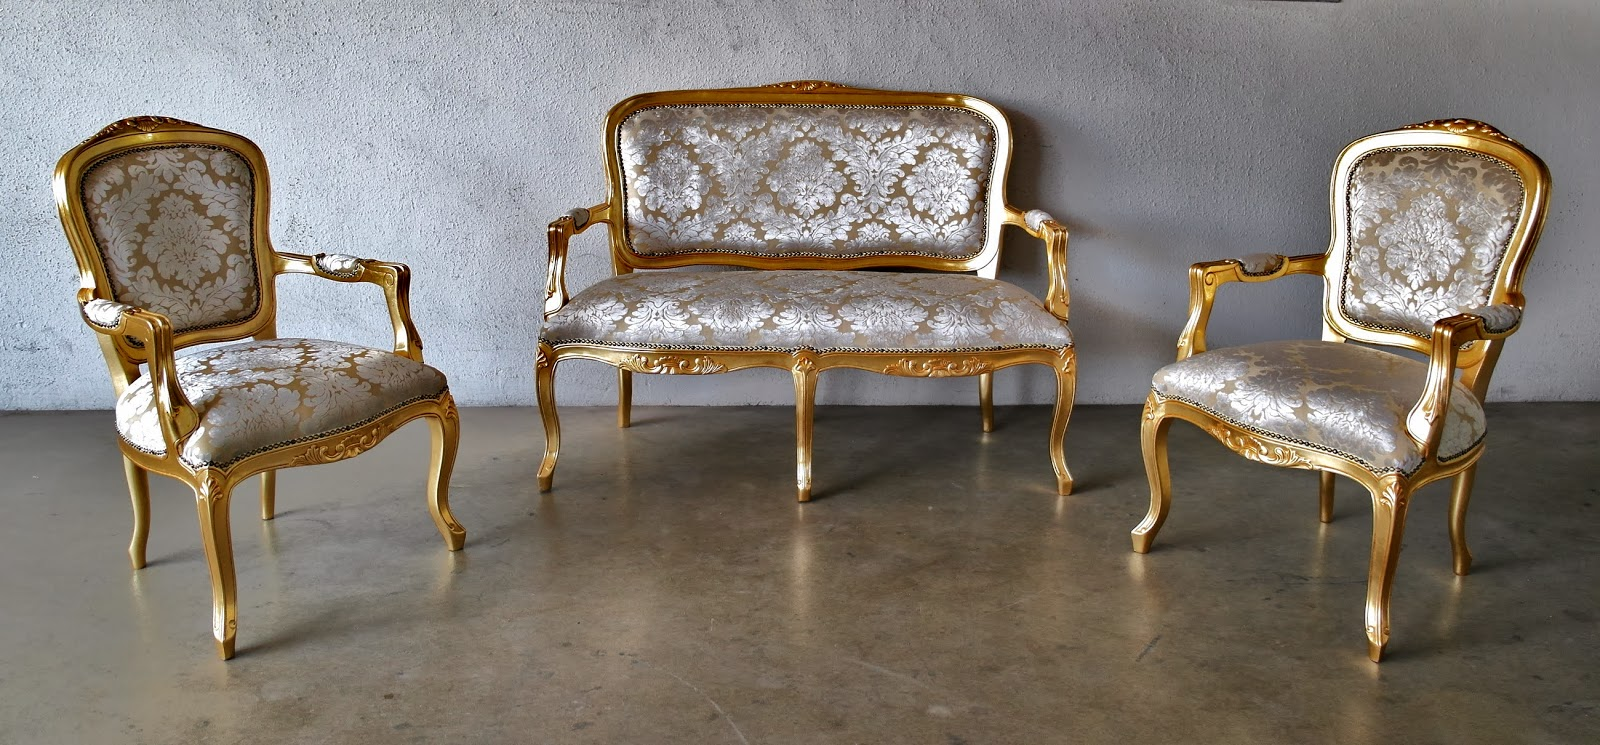 2 Seater Sofa Singapore Storage Beds Passionately French Furniture - Classic And Modern | Bobs ...